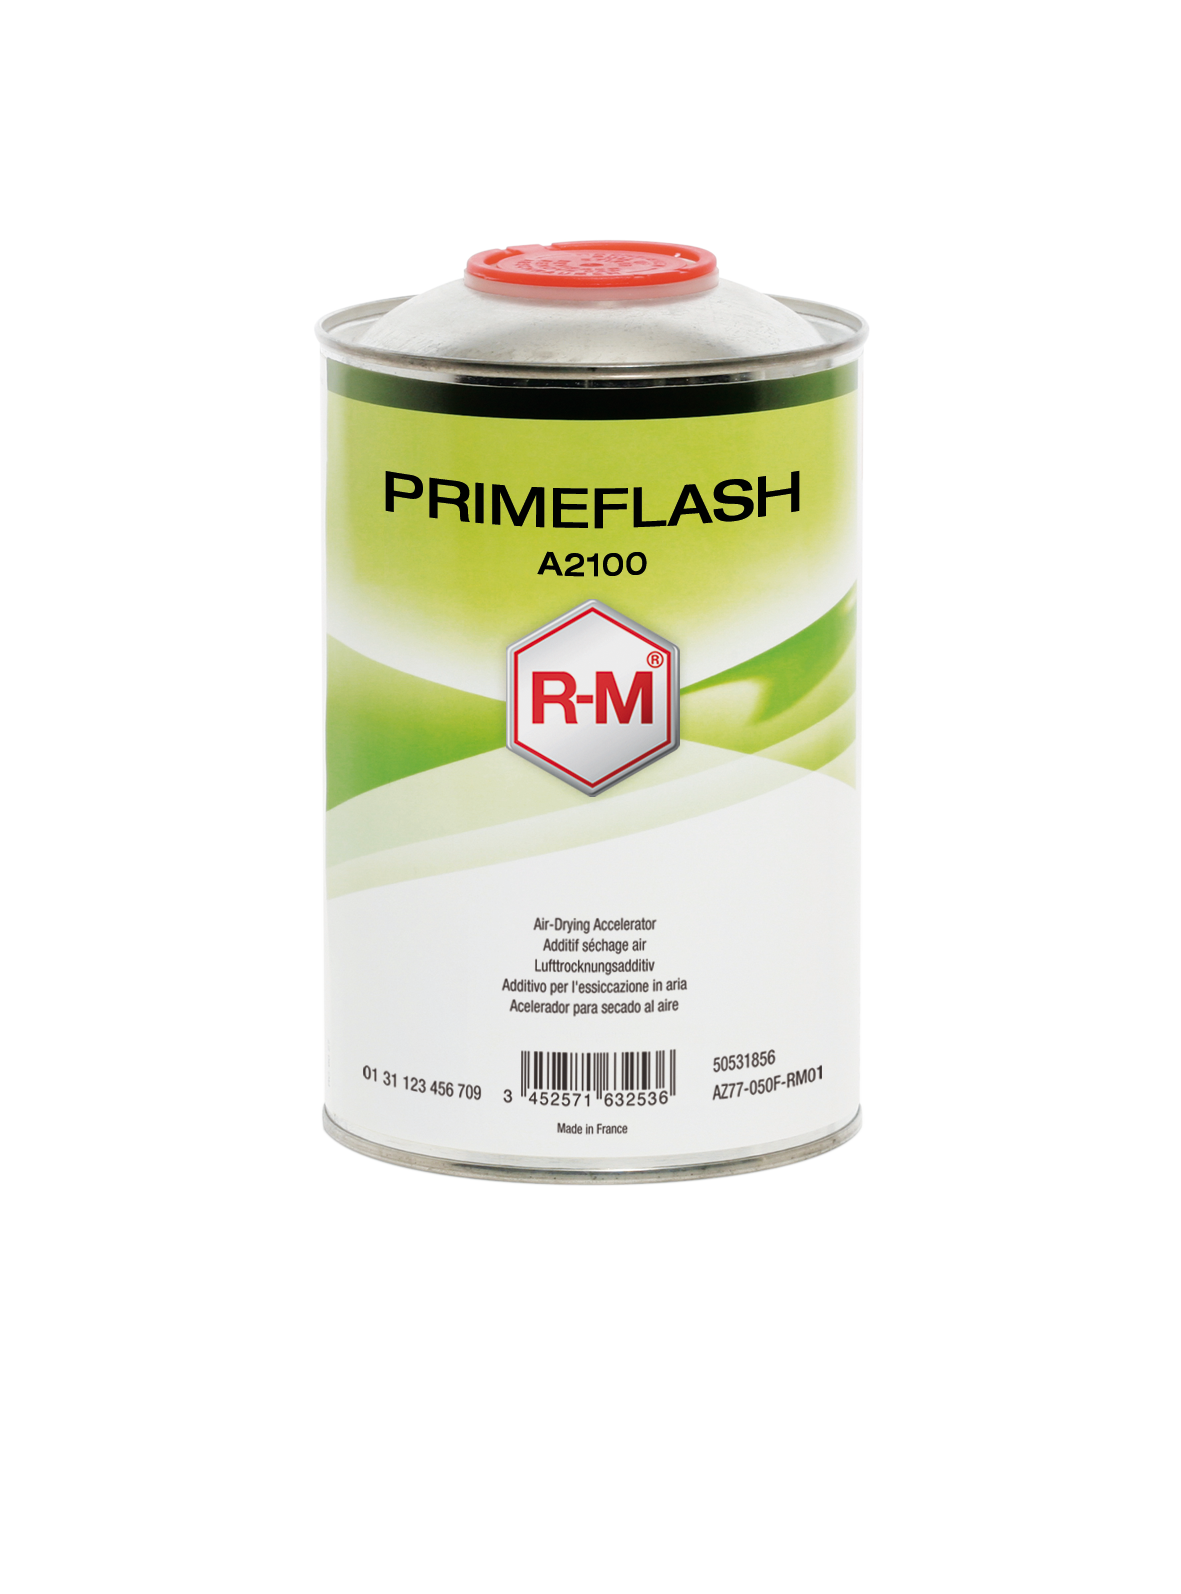 RS2167 Di Primeflash